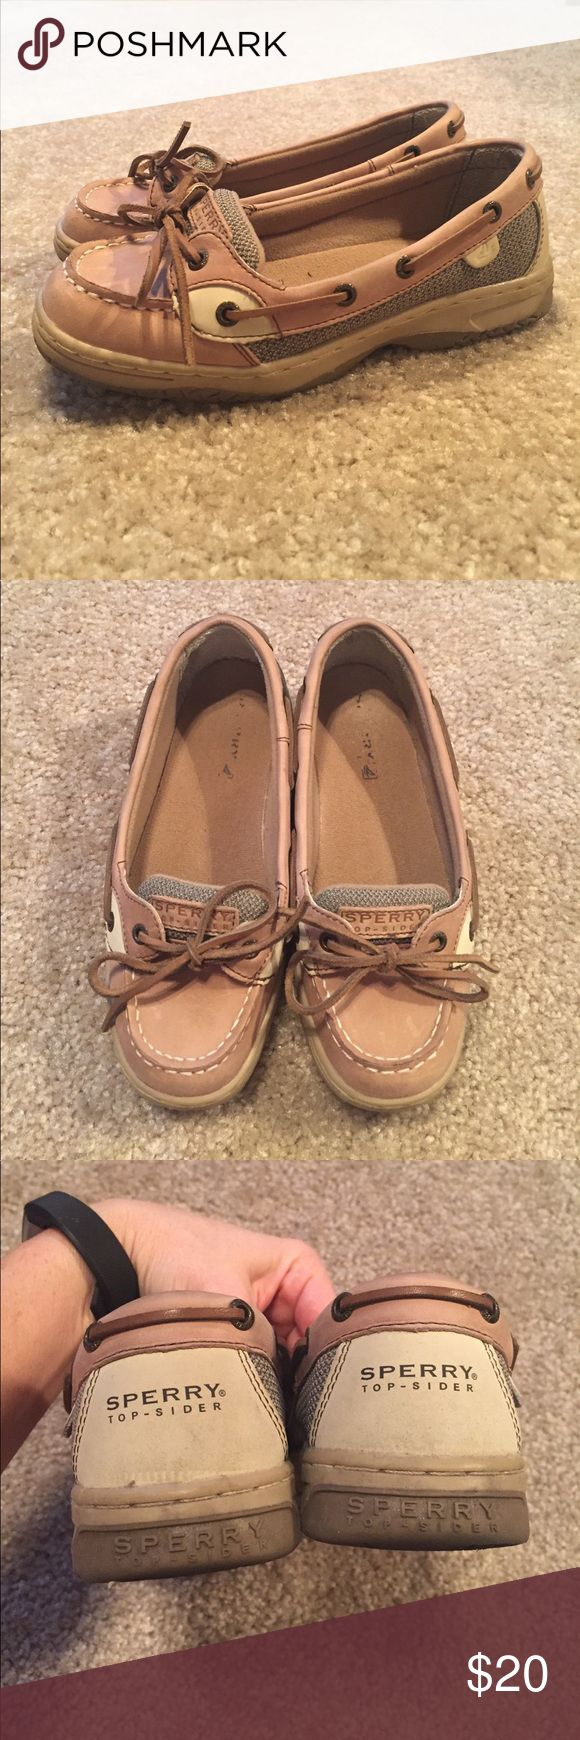 Sperry Boat Shoes Kids US3 Sperry Boat Shoes Kids US3 (fits like a US women's 5); Tan and Brown; EUC Sperry Top-Sider Shoes Flats & Loafers